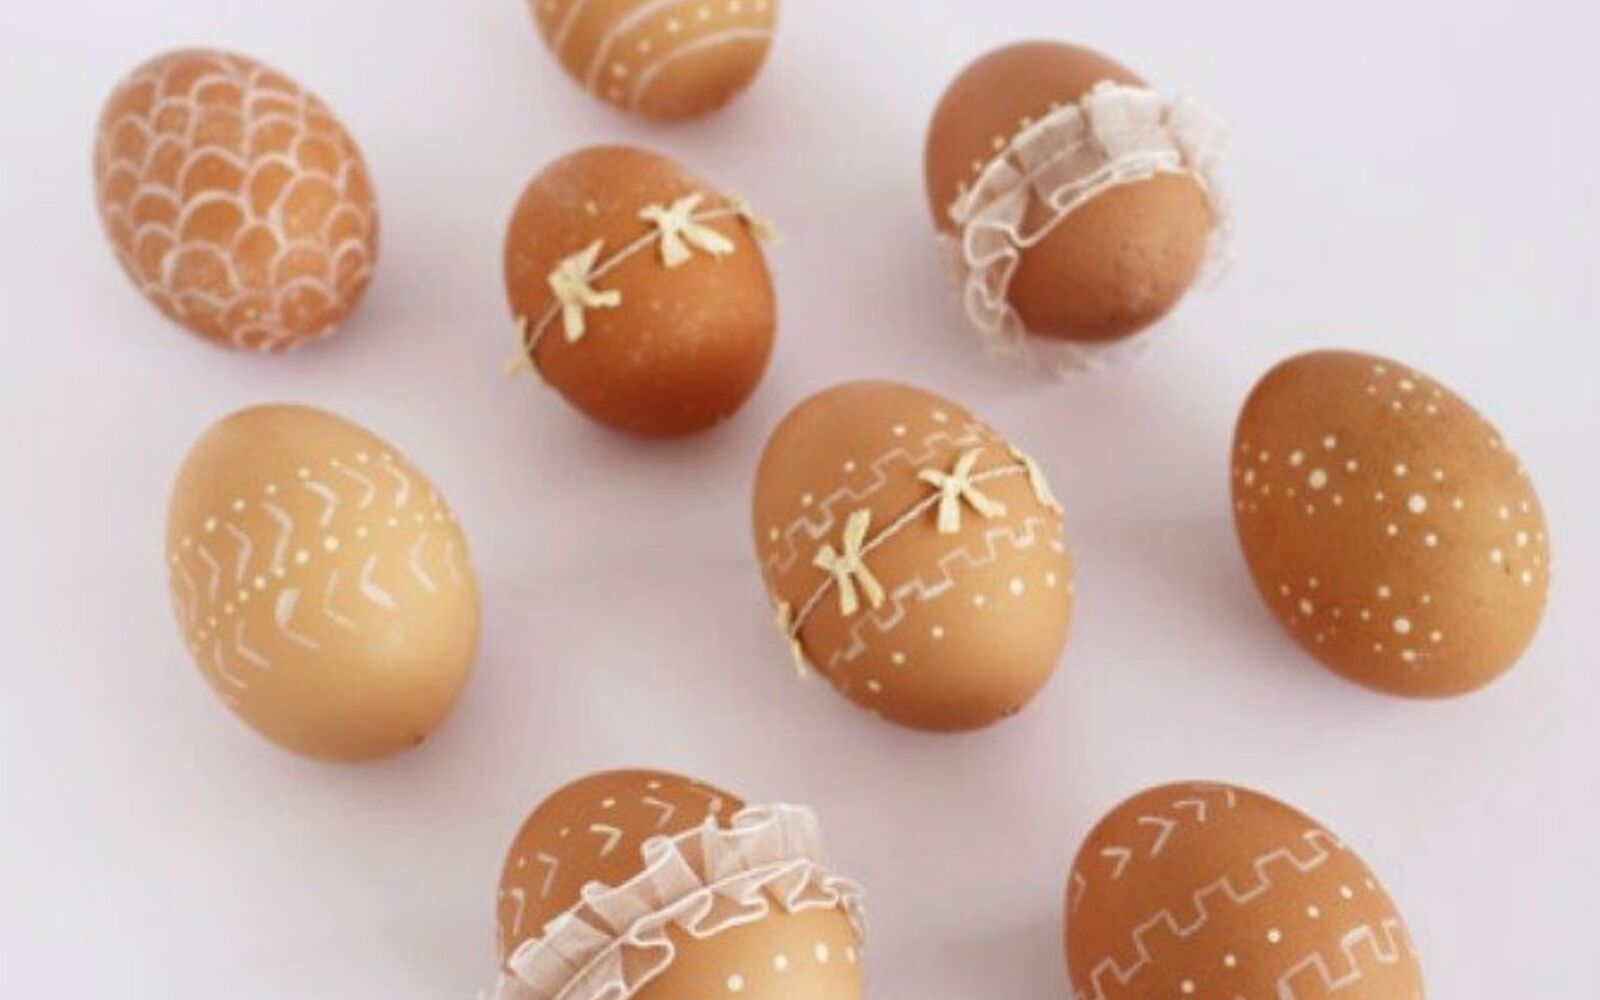 s 23 totally different ways to decorate real eggs this easter, crafts, easter decorations, Add cute neutral toned embellishments